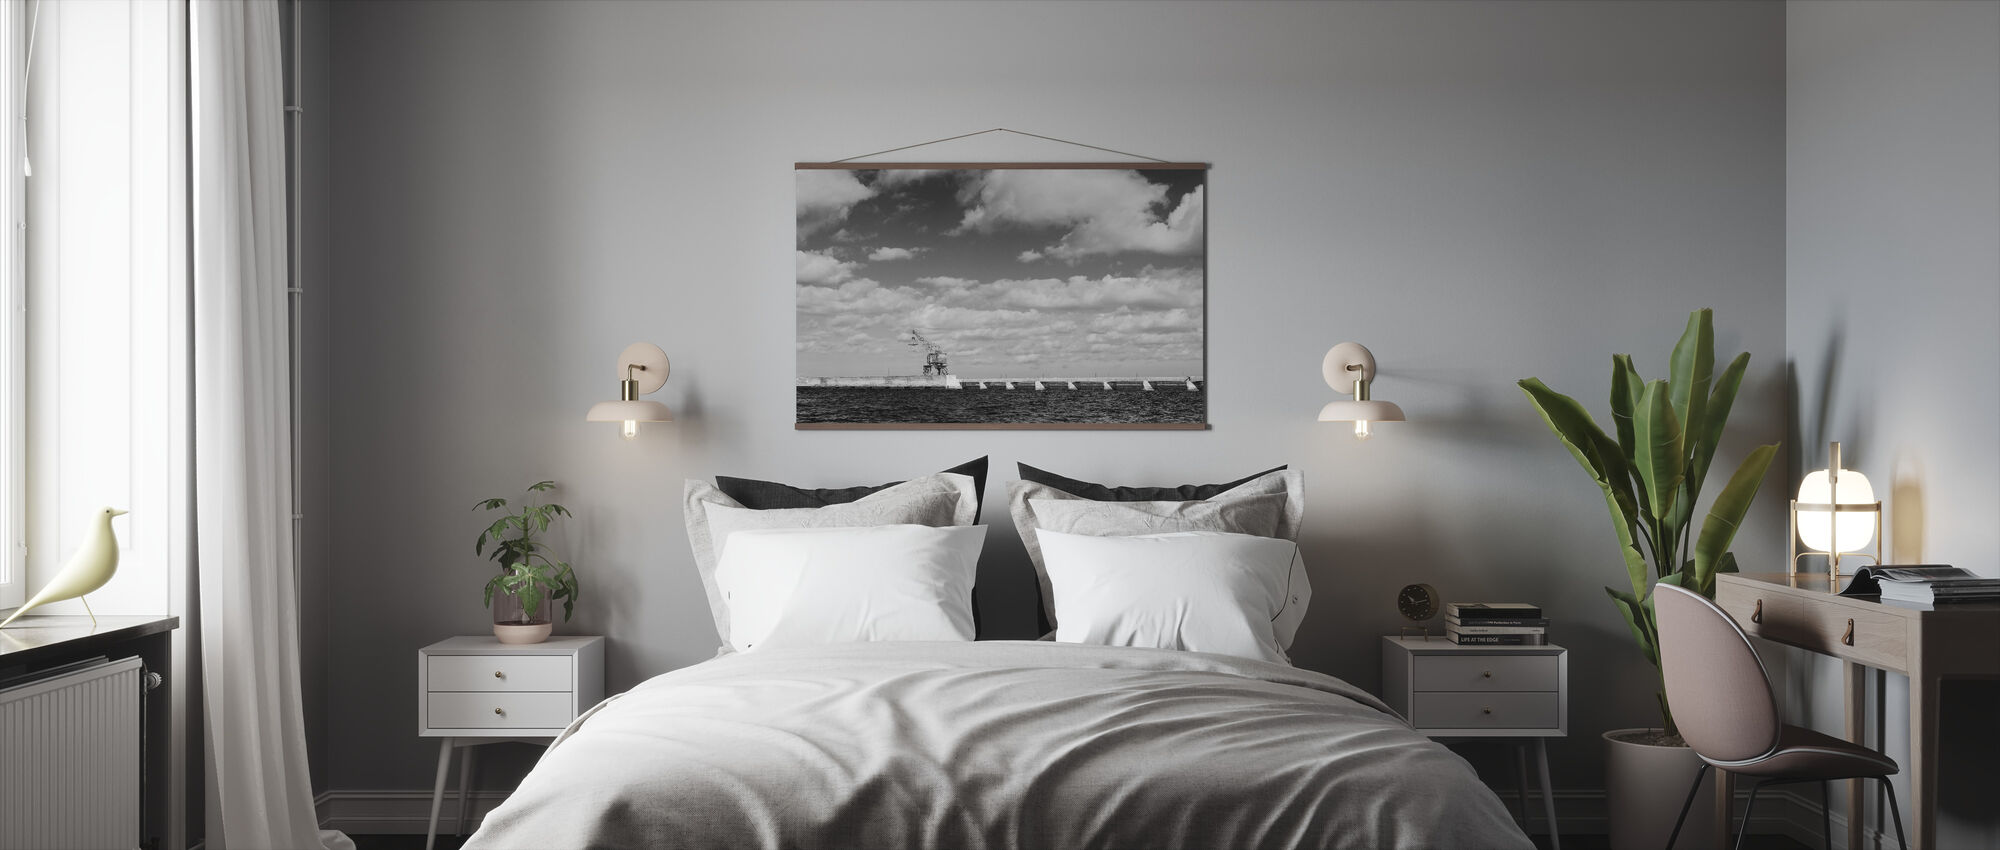 Limestone Bridge with Large Clouds, black and white - Poster - Bedroom